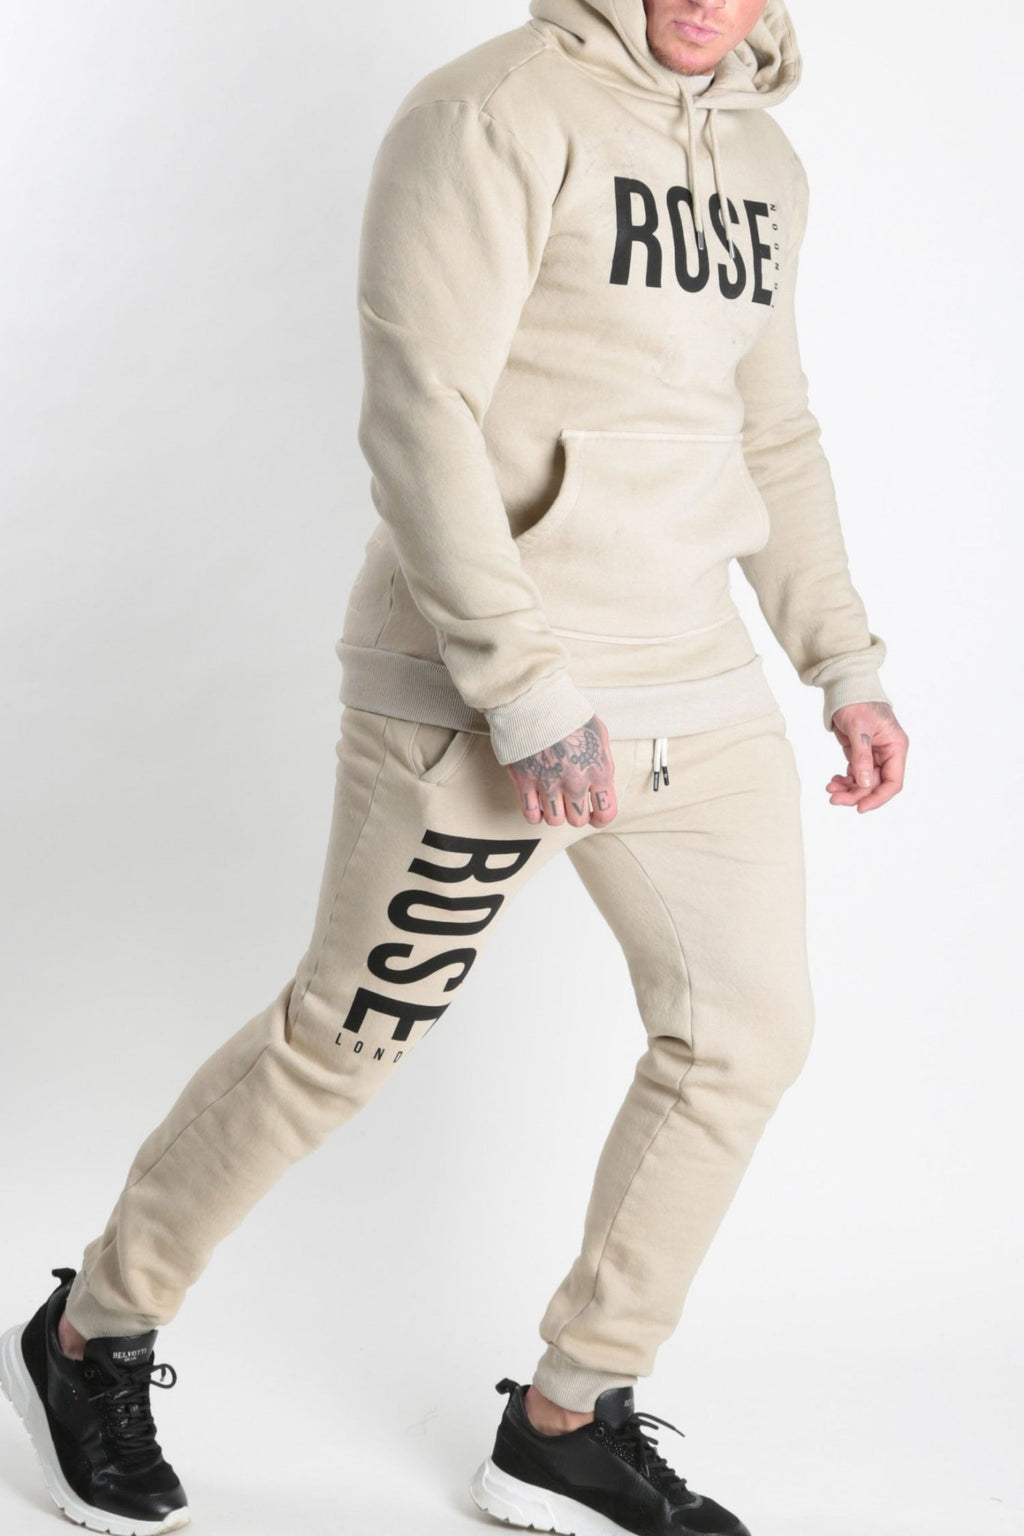 Rose Basic Logo Jogger Stone - Rose London